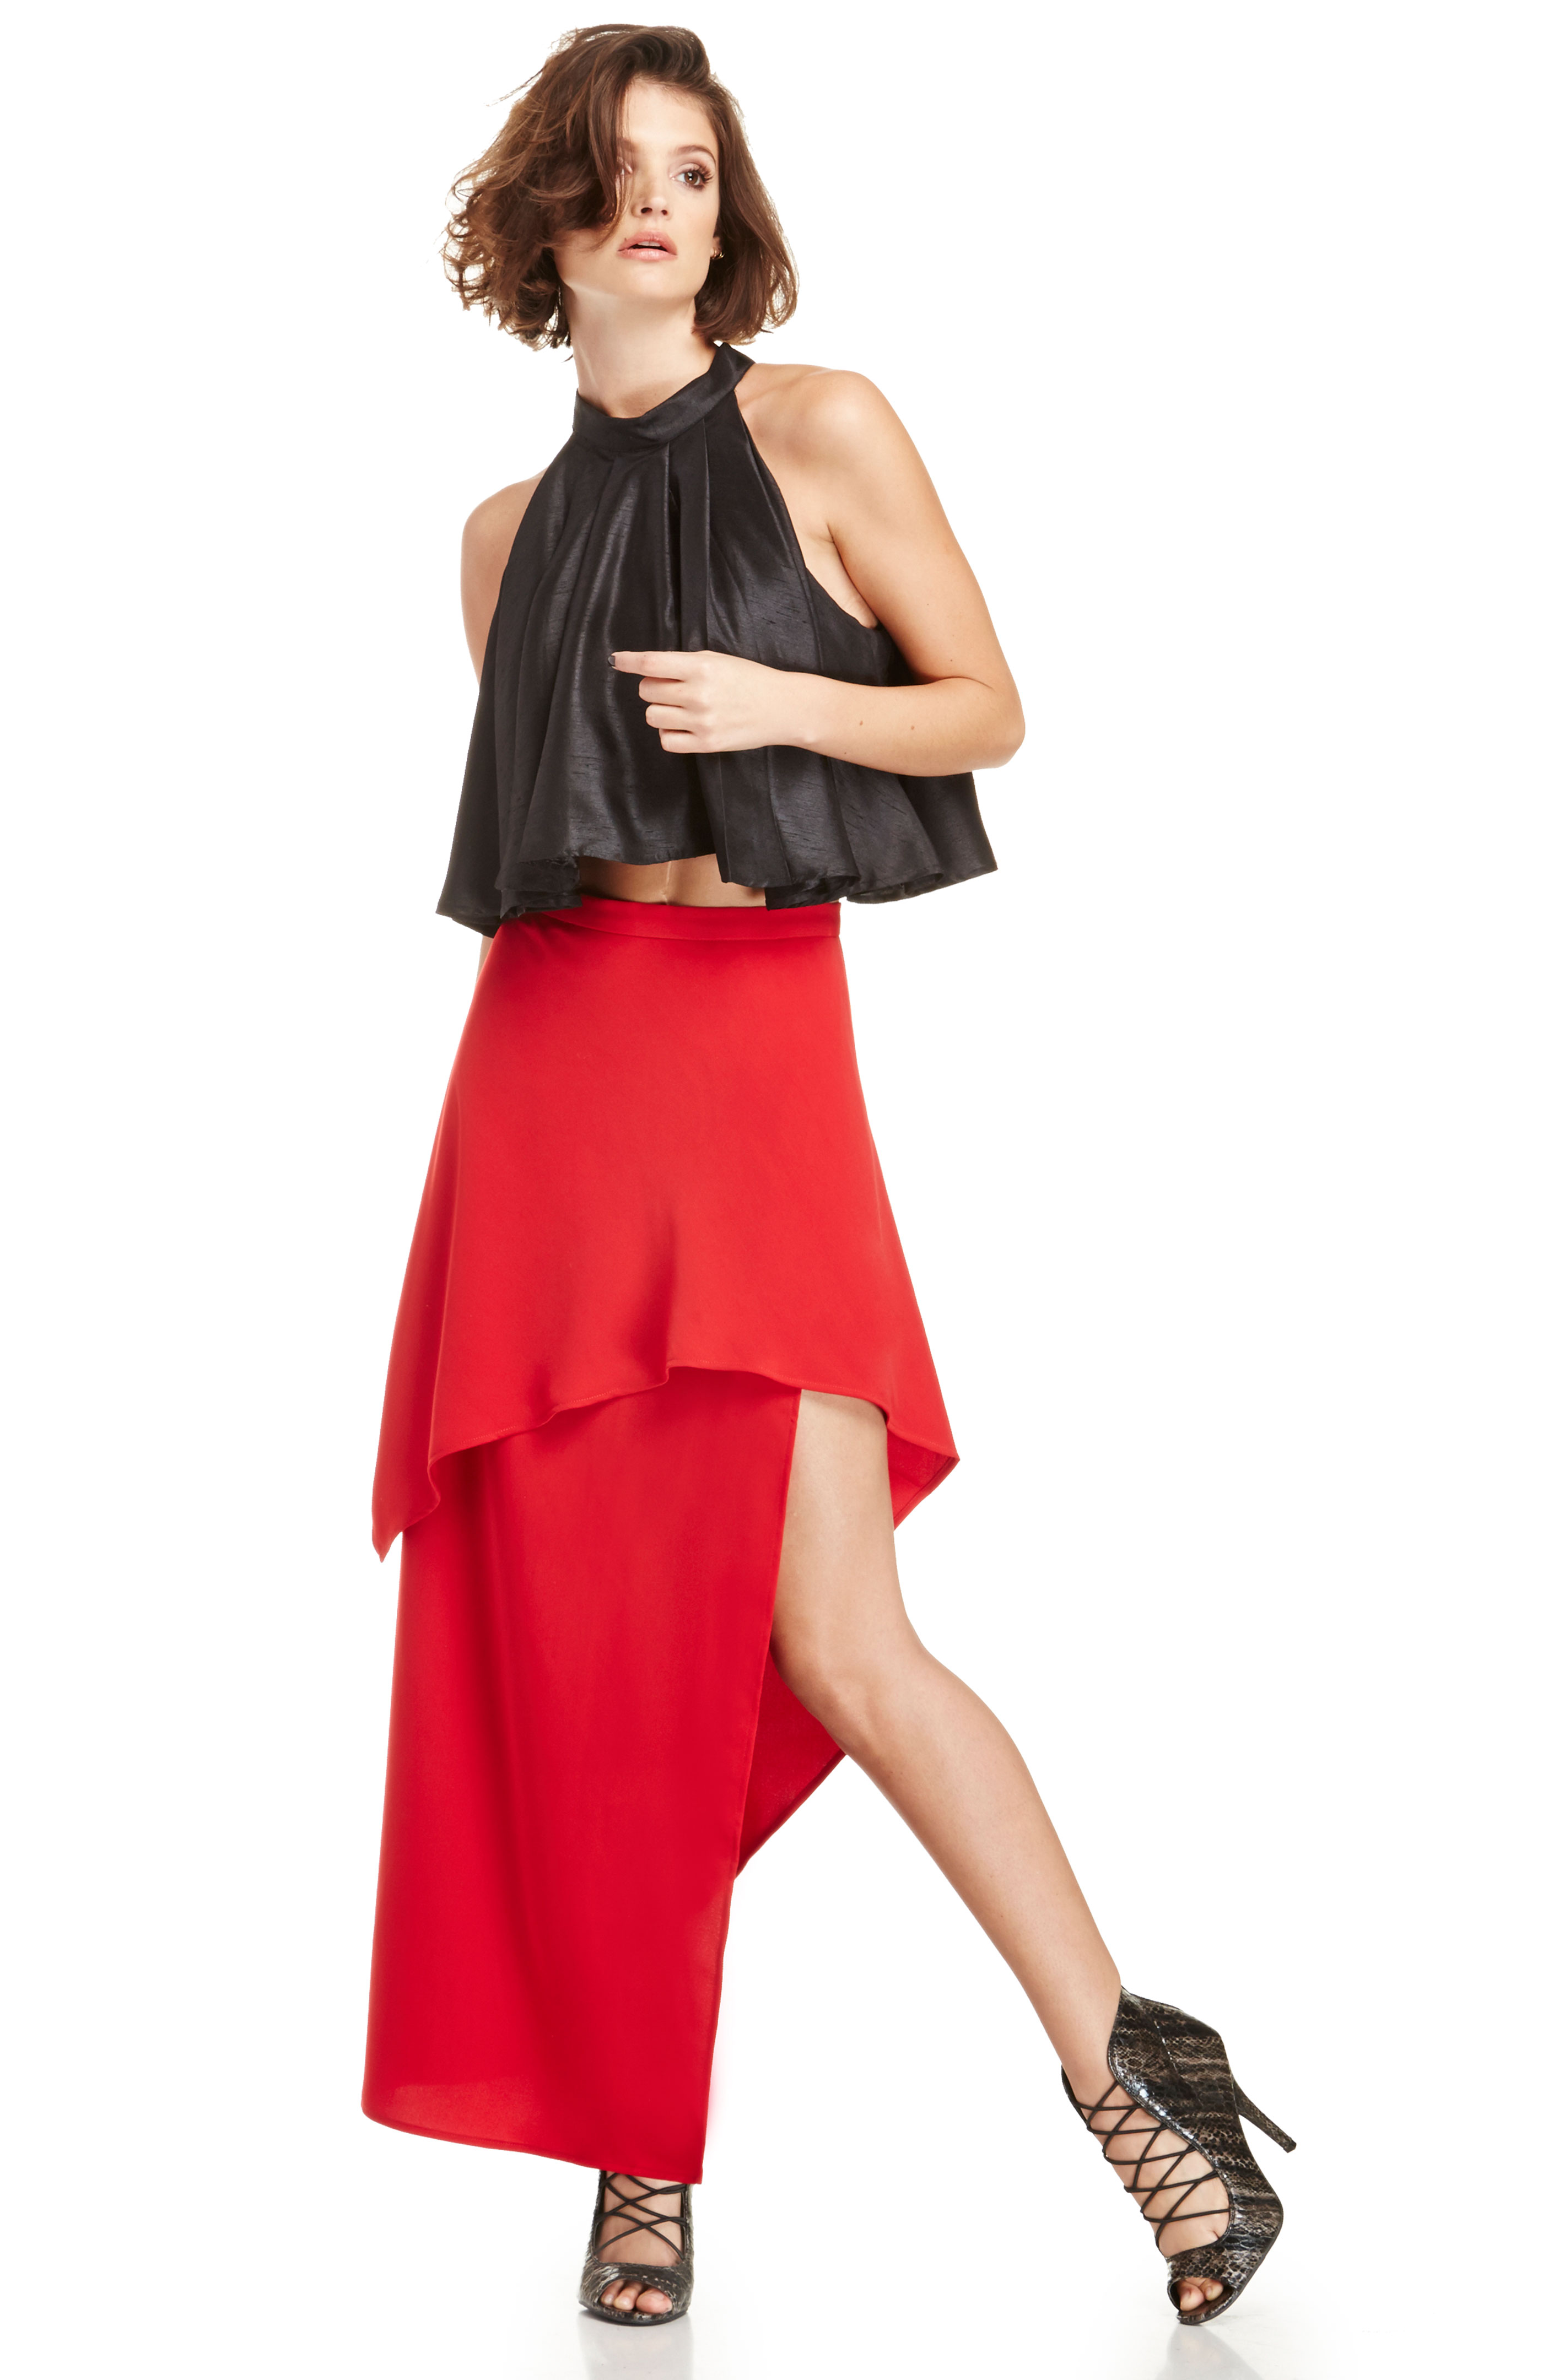 STYLESTALKER Coral Beauty Skirt in red XS - M at DAILYLOOK